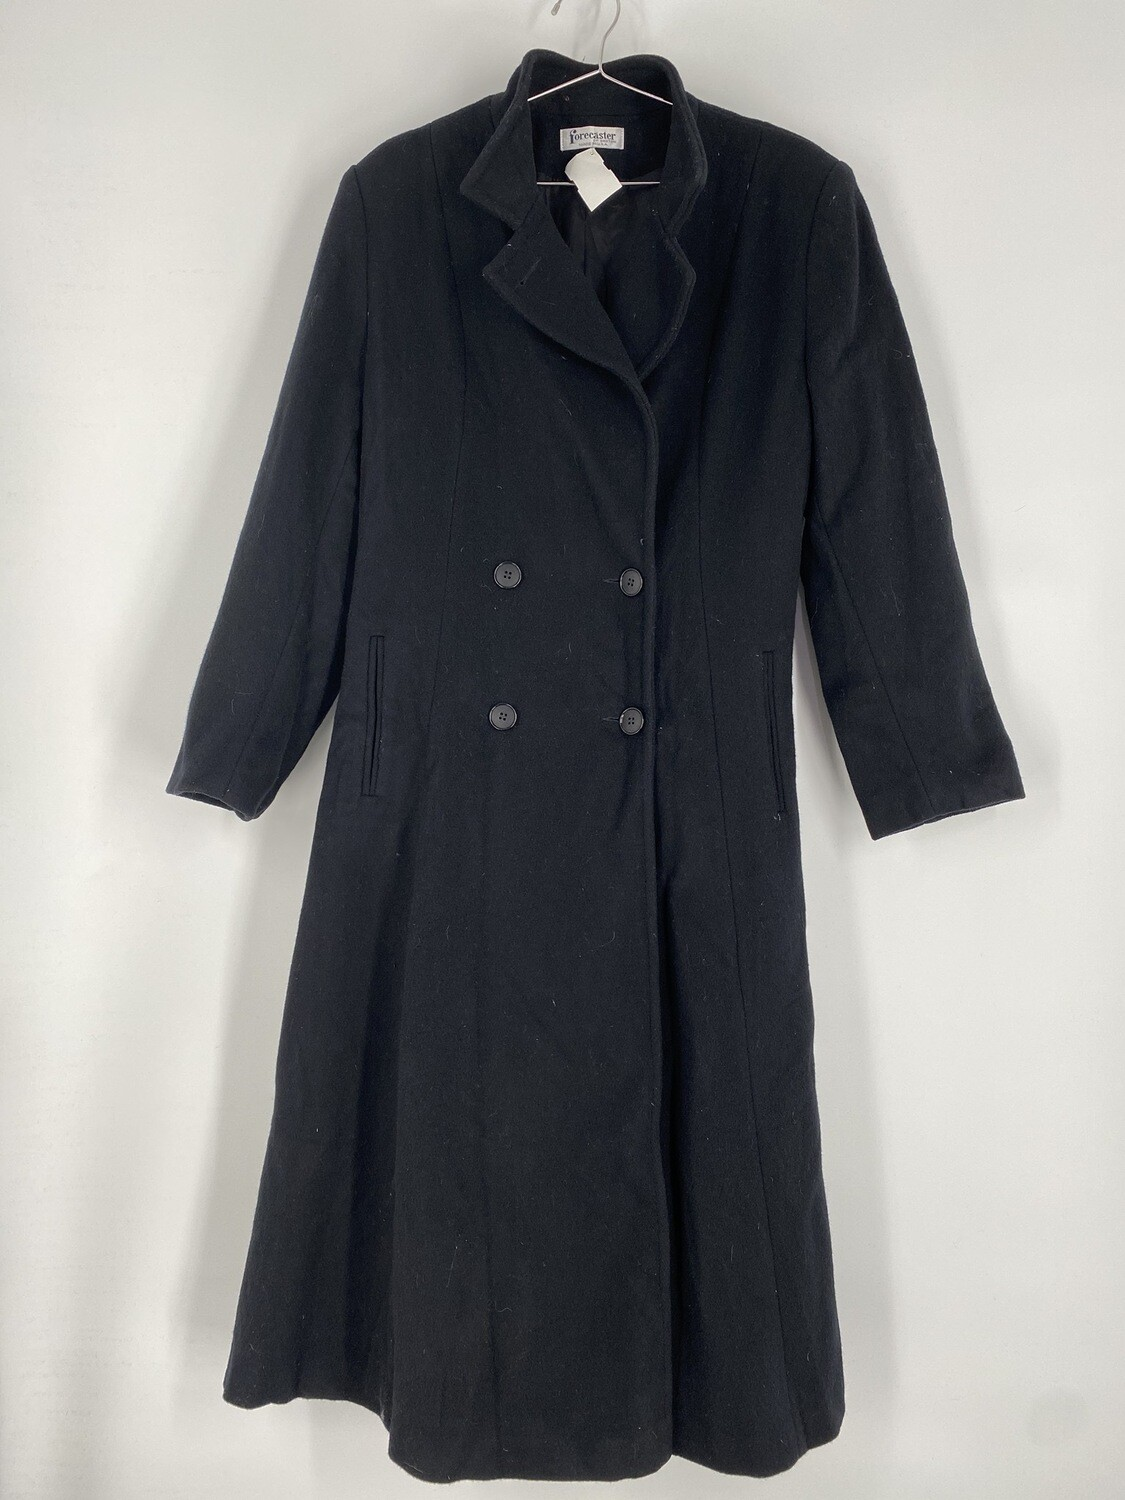 Forecaster Black Trench Coat Size L